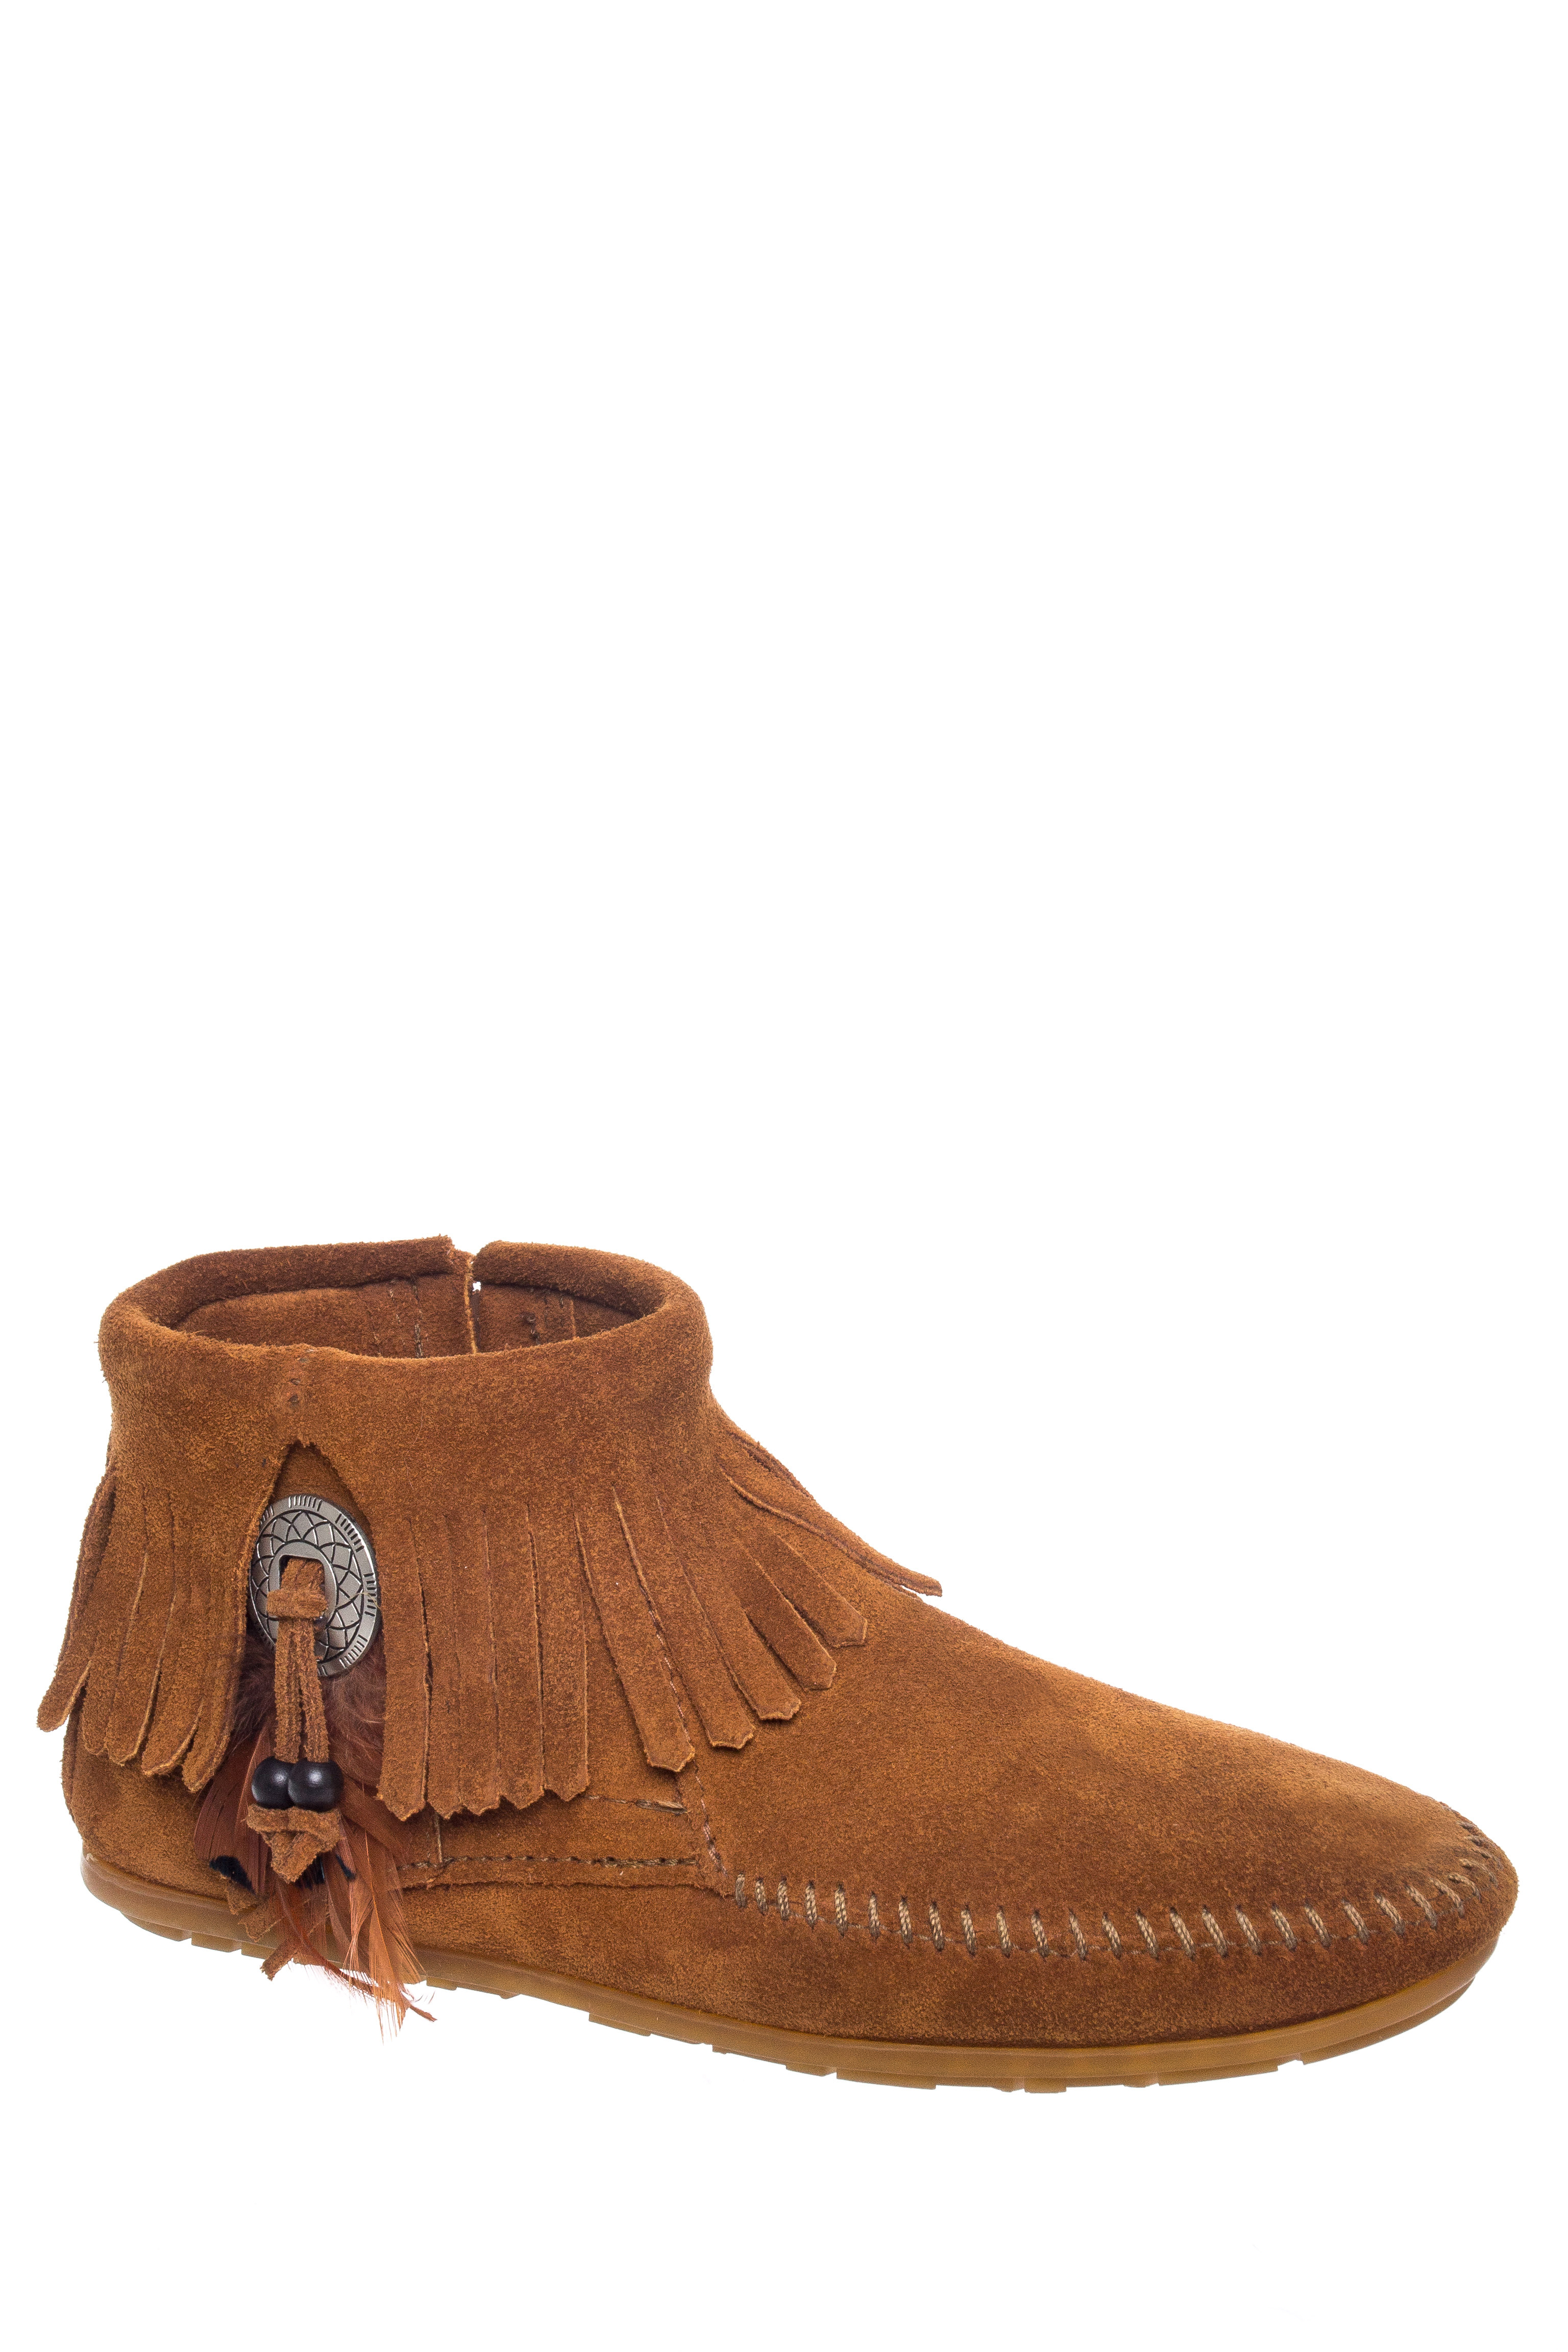 Minnetonka Concho Feather Boot Womens Style : 522 by